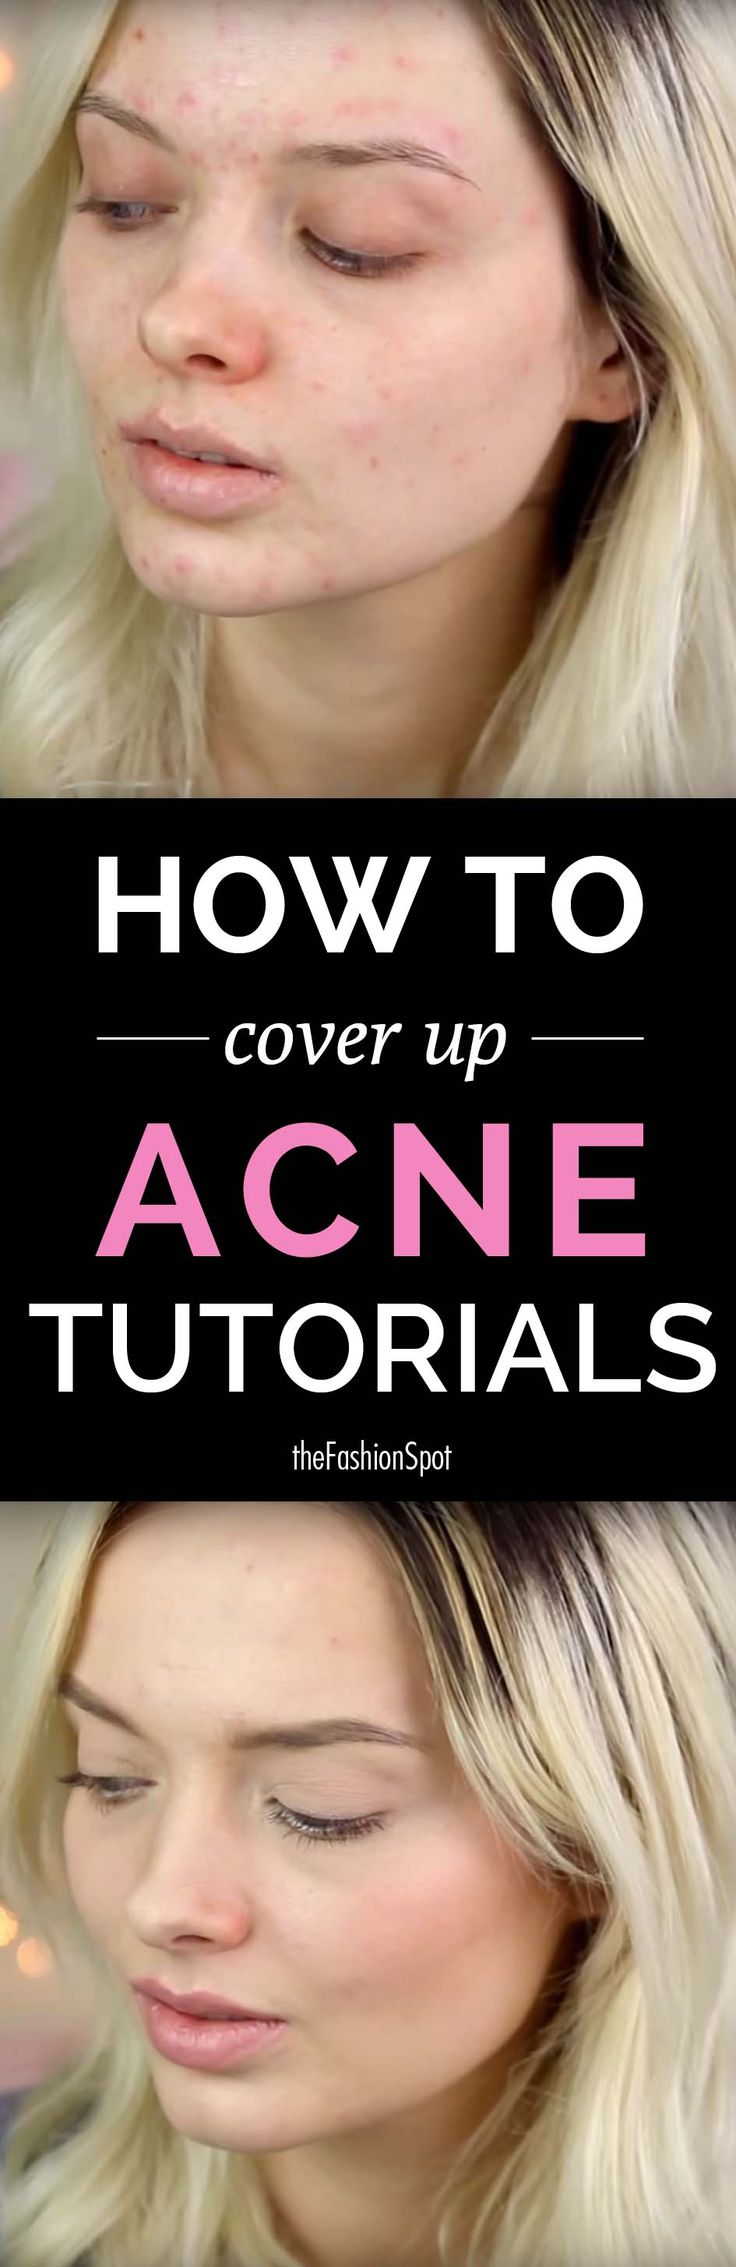 How to cover up acne